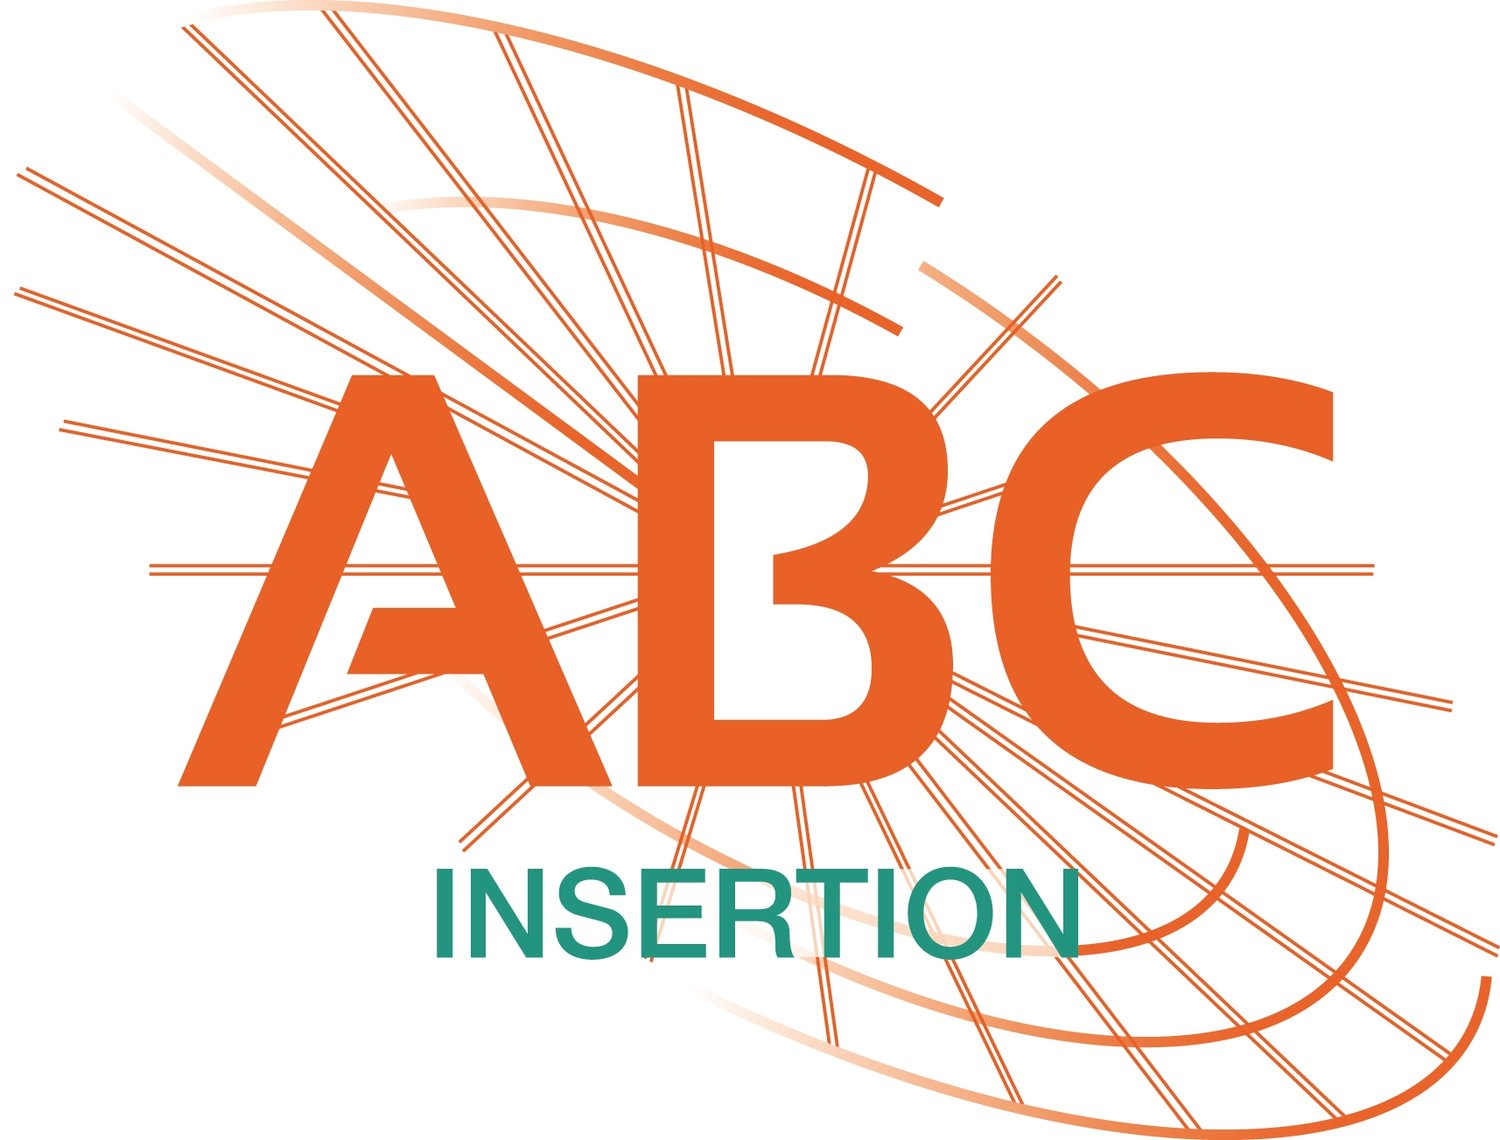 ABC Insertion